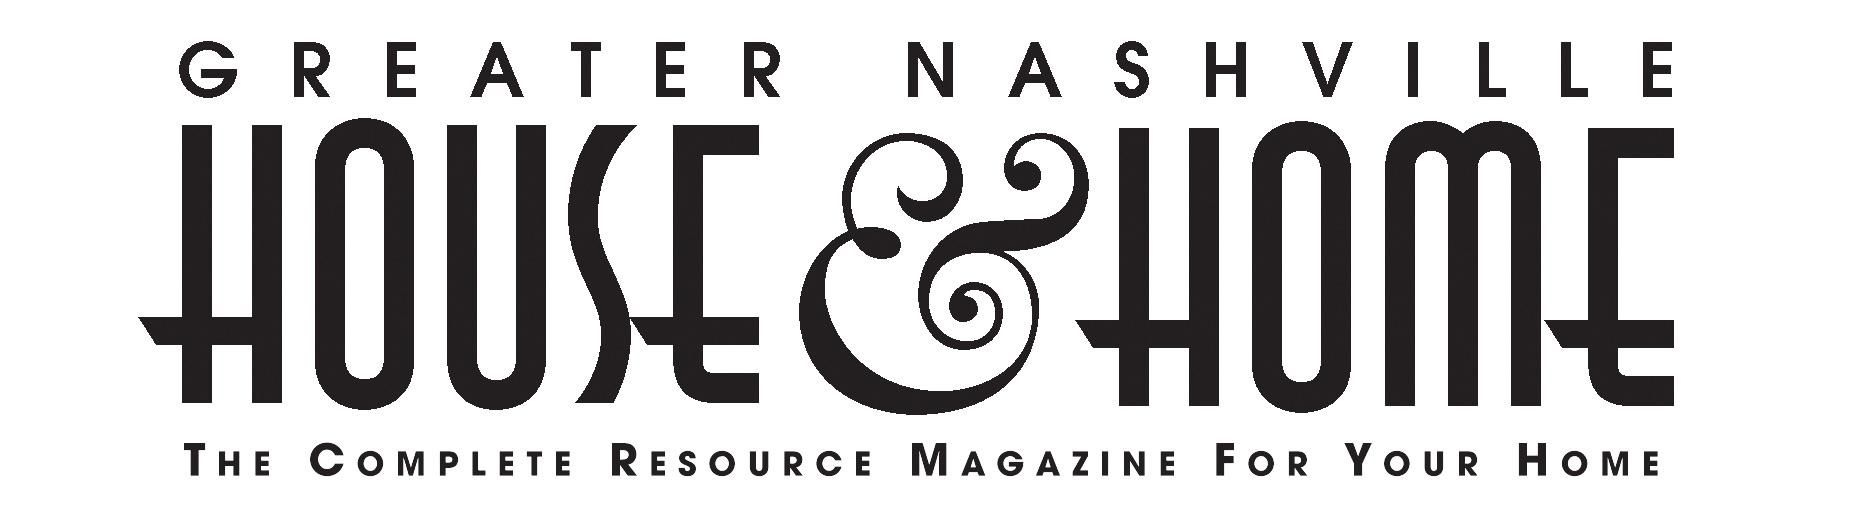 Nashville House Home and Garden Magazine